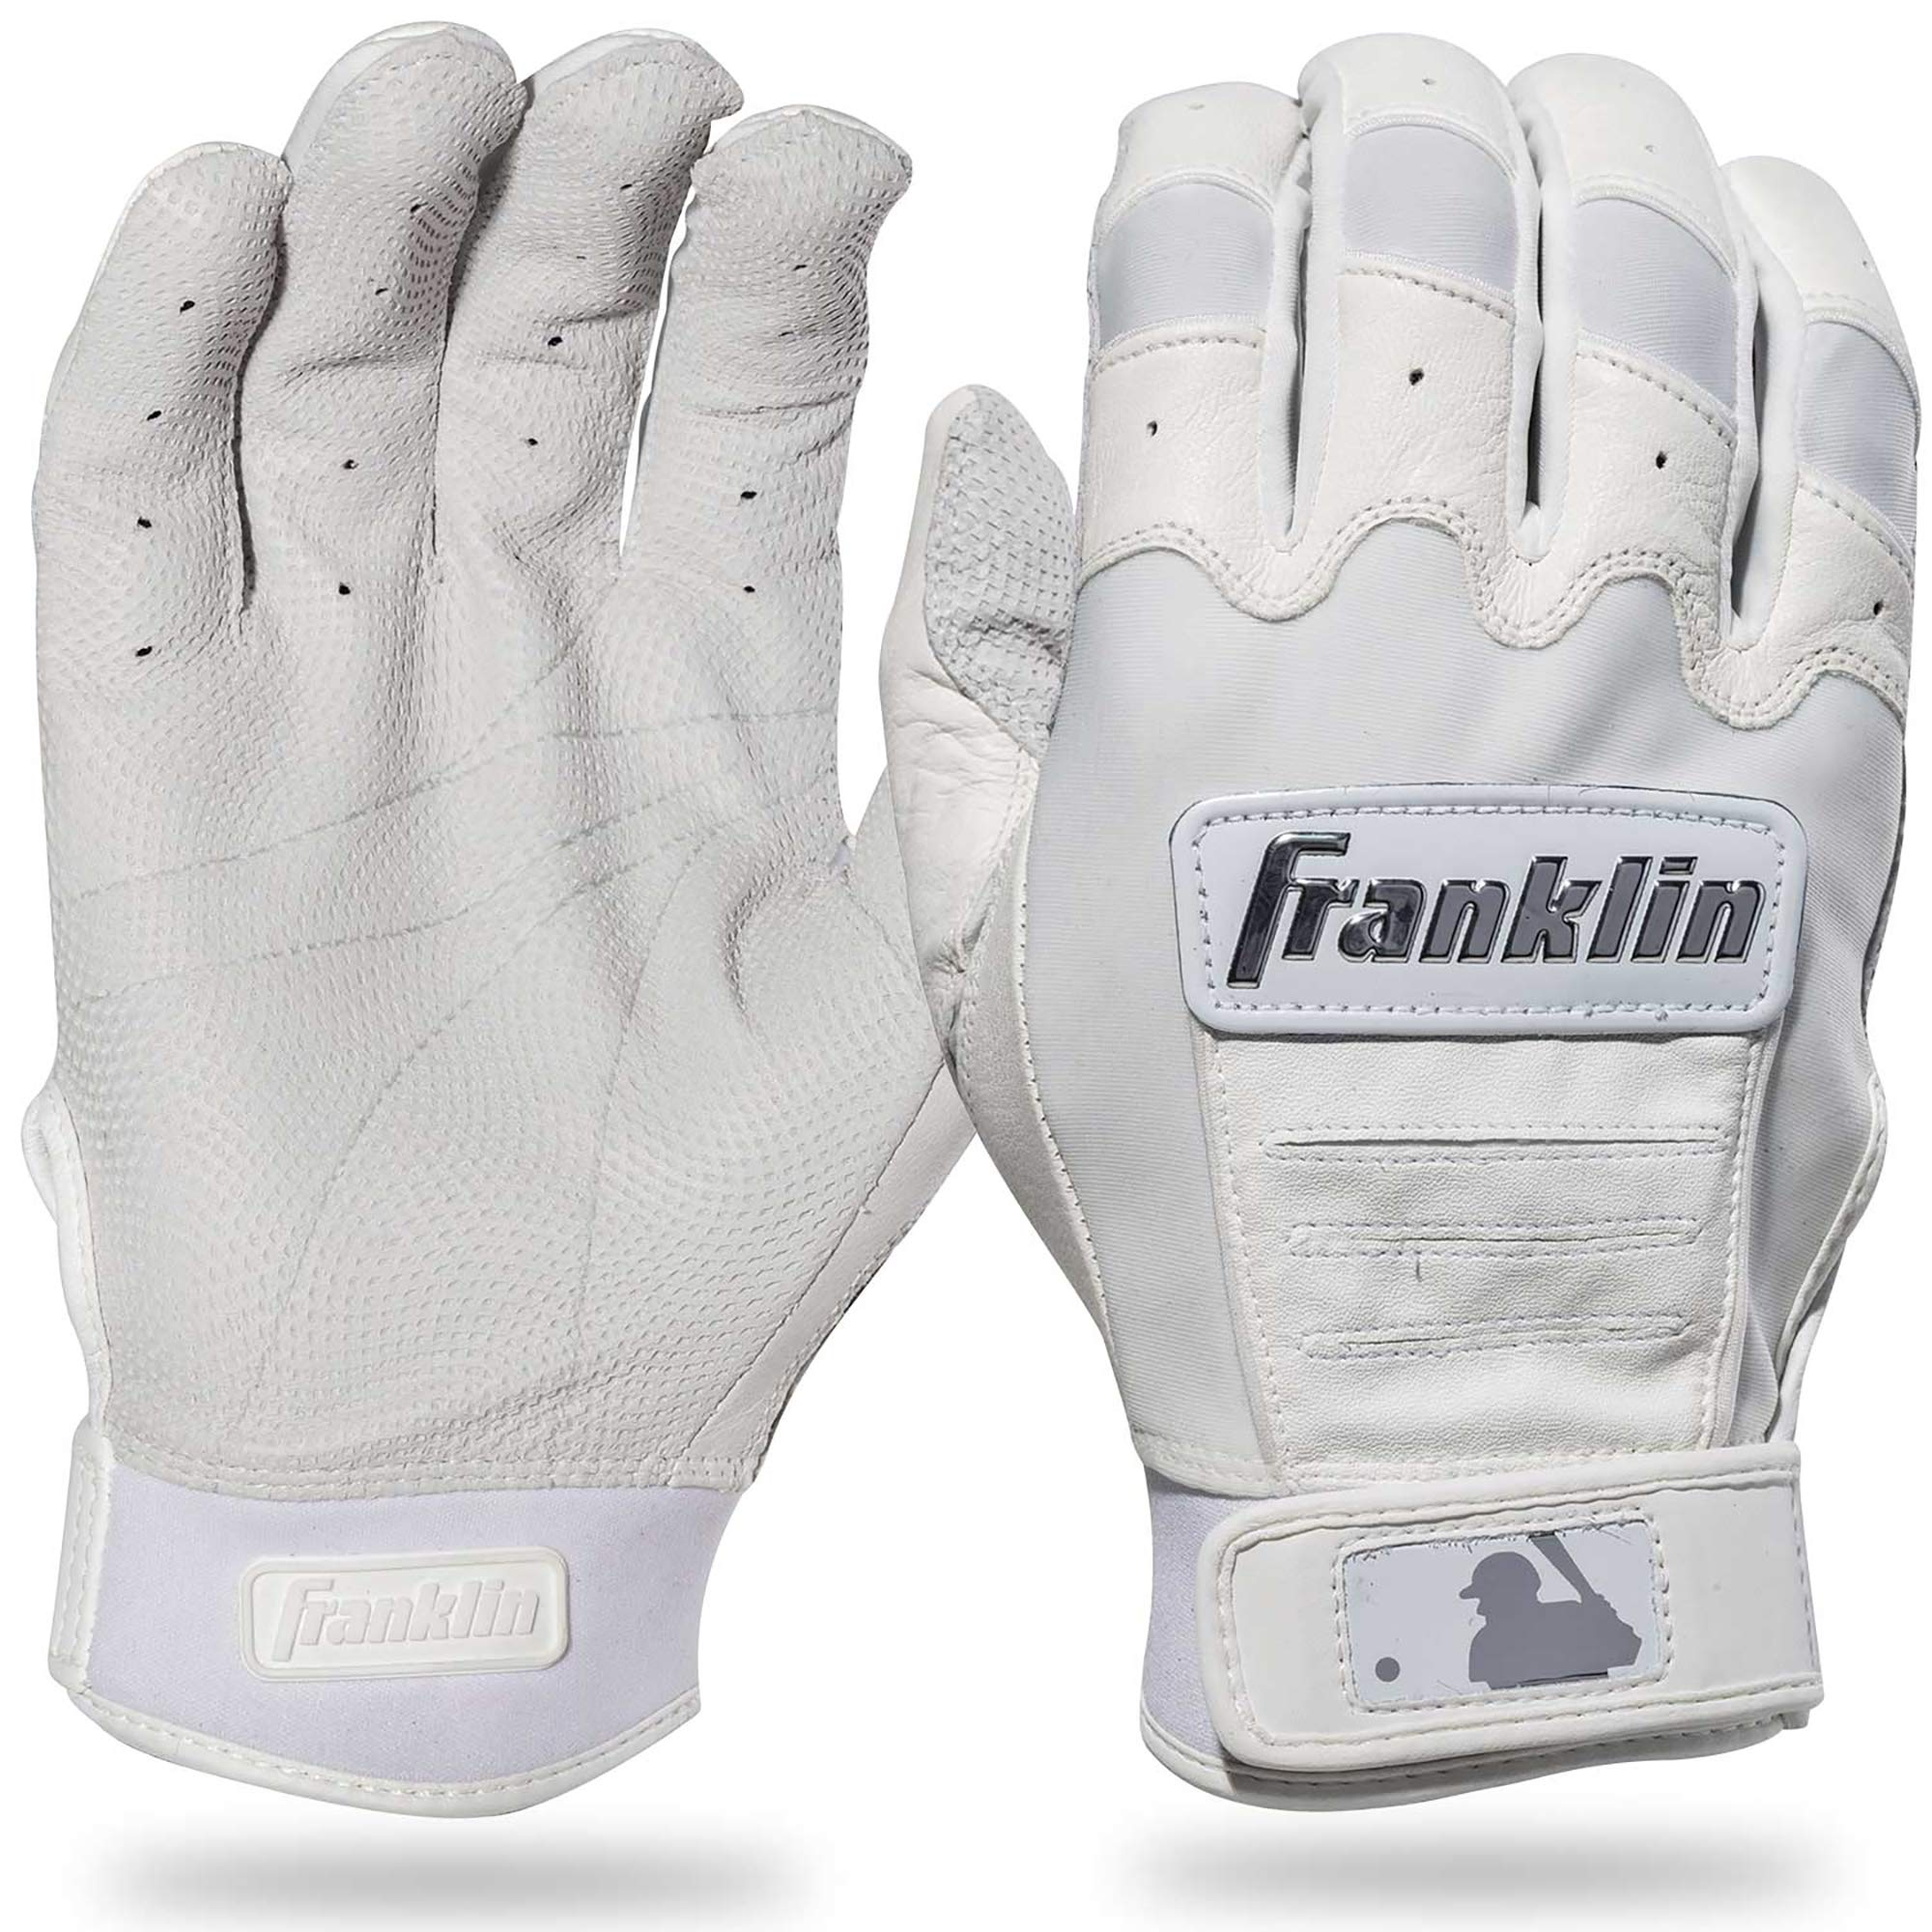 Franklin Sports CFX Pro Full Color Chrome Series Batting Gloves CFX Pro Full Color Chrome Batting Gloves, White, Adult Small